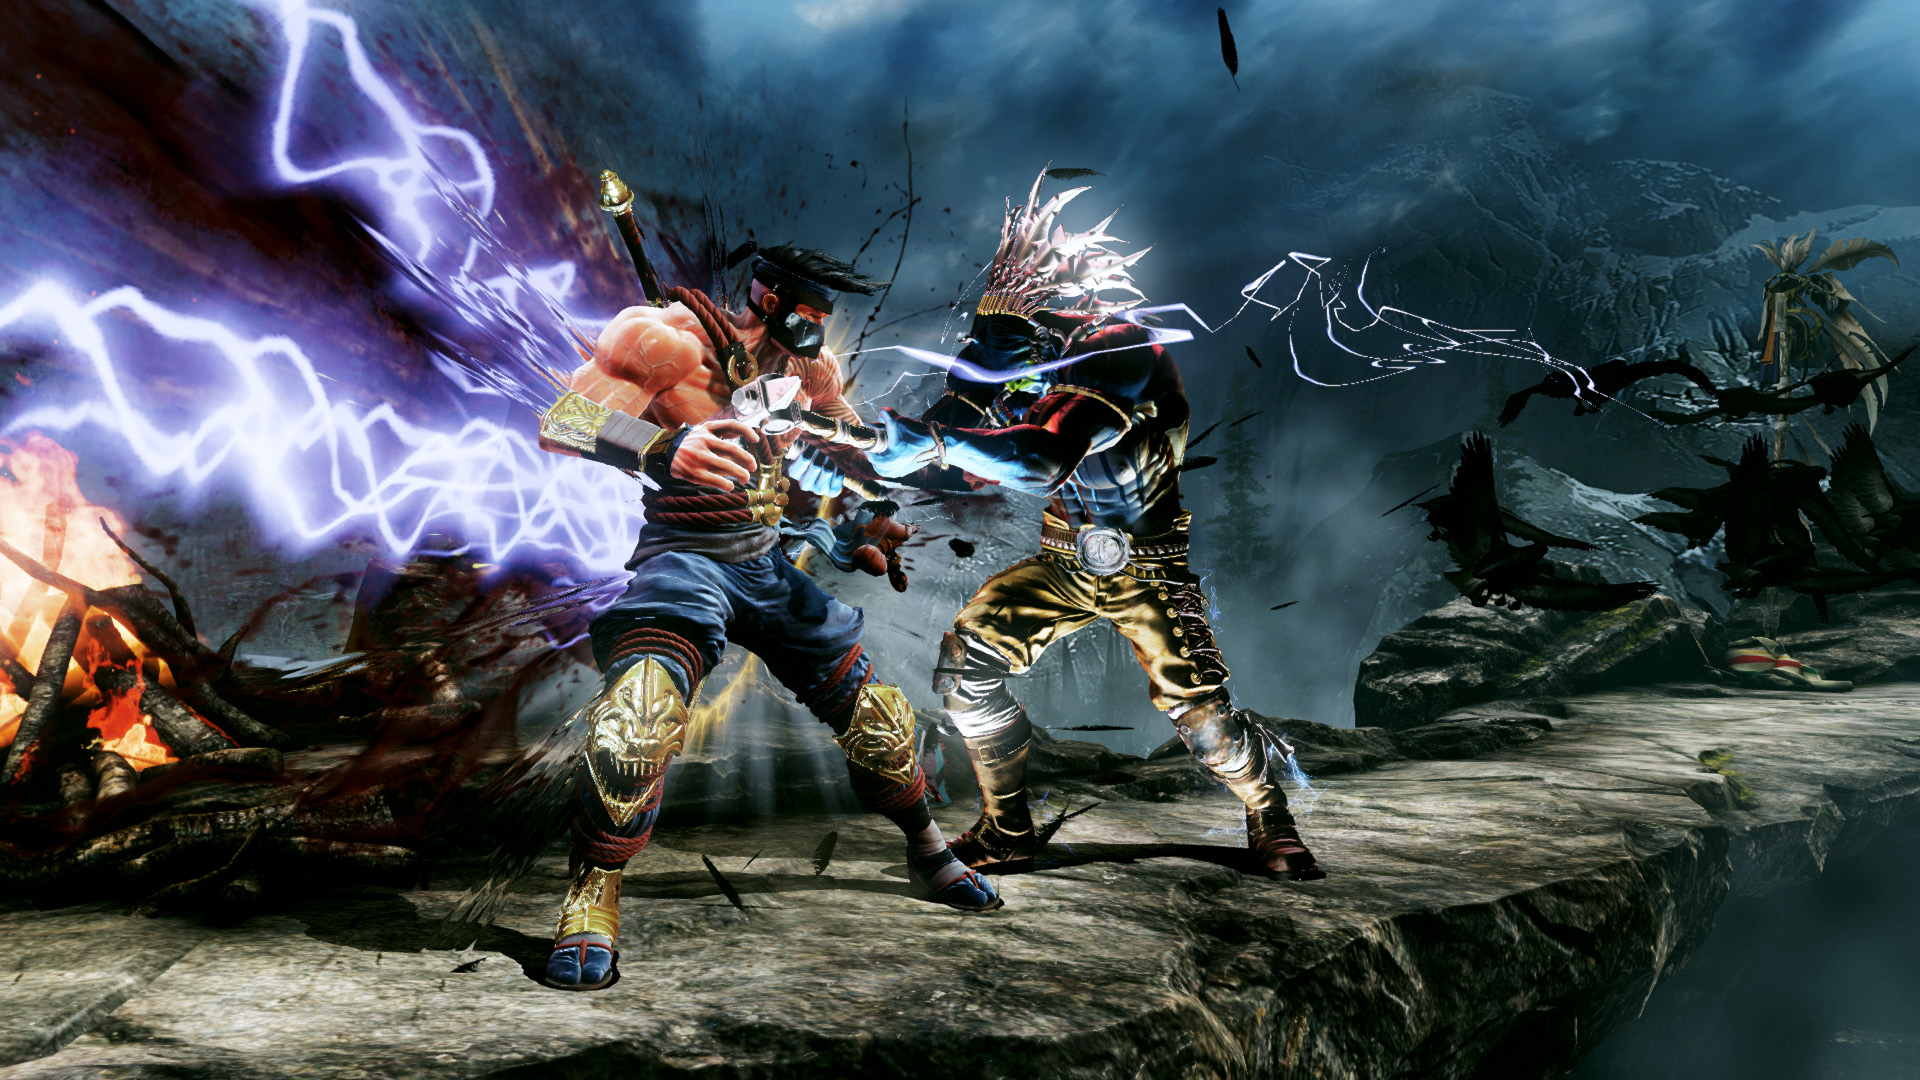 Game Wallpapers Killer Instinct Xbox One Wallpaper Free Top Best